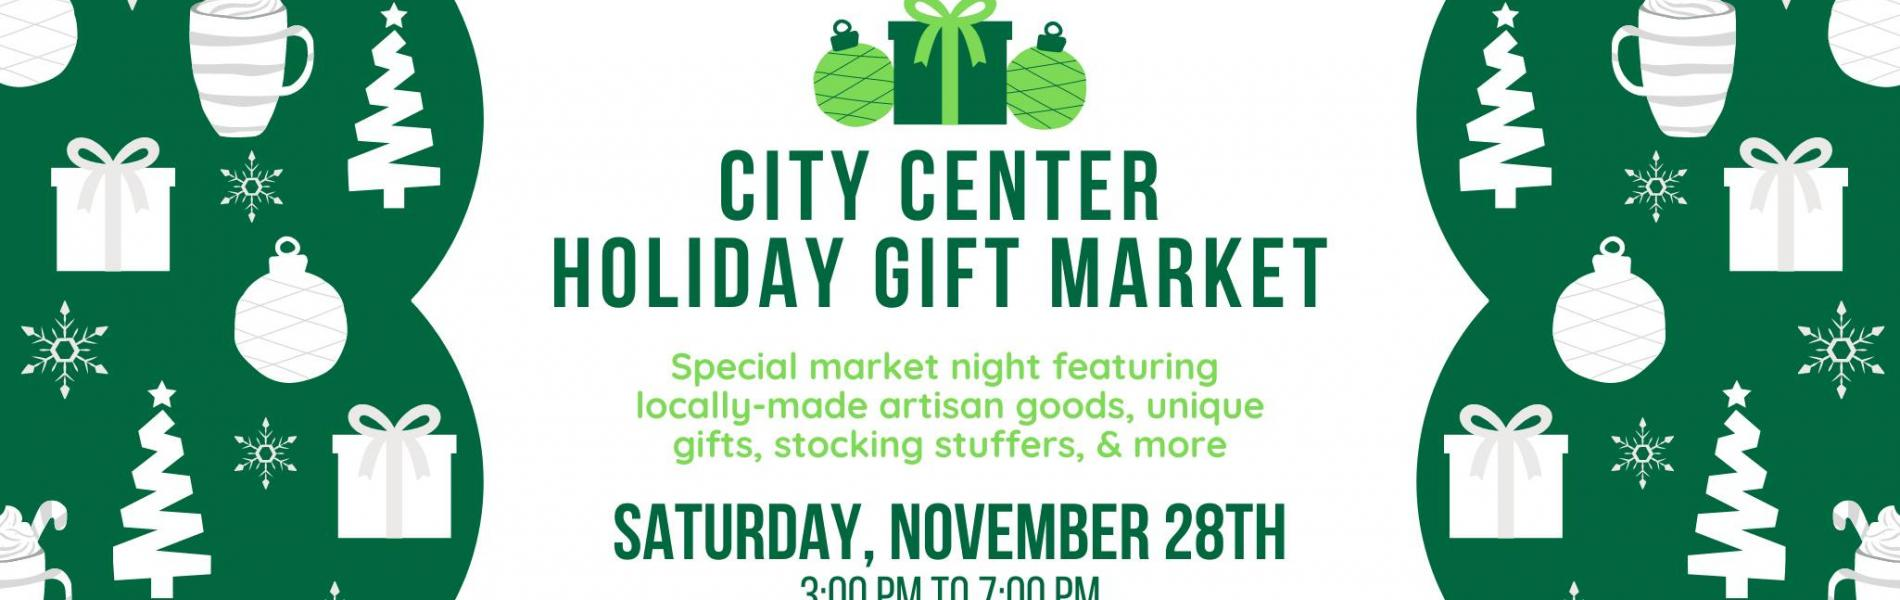 City Center Holiday Gift Market